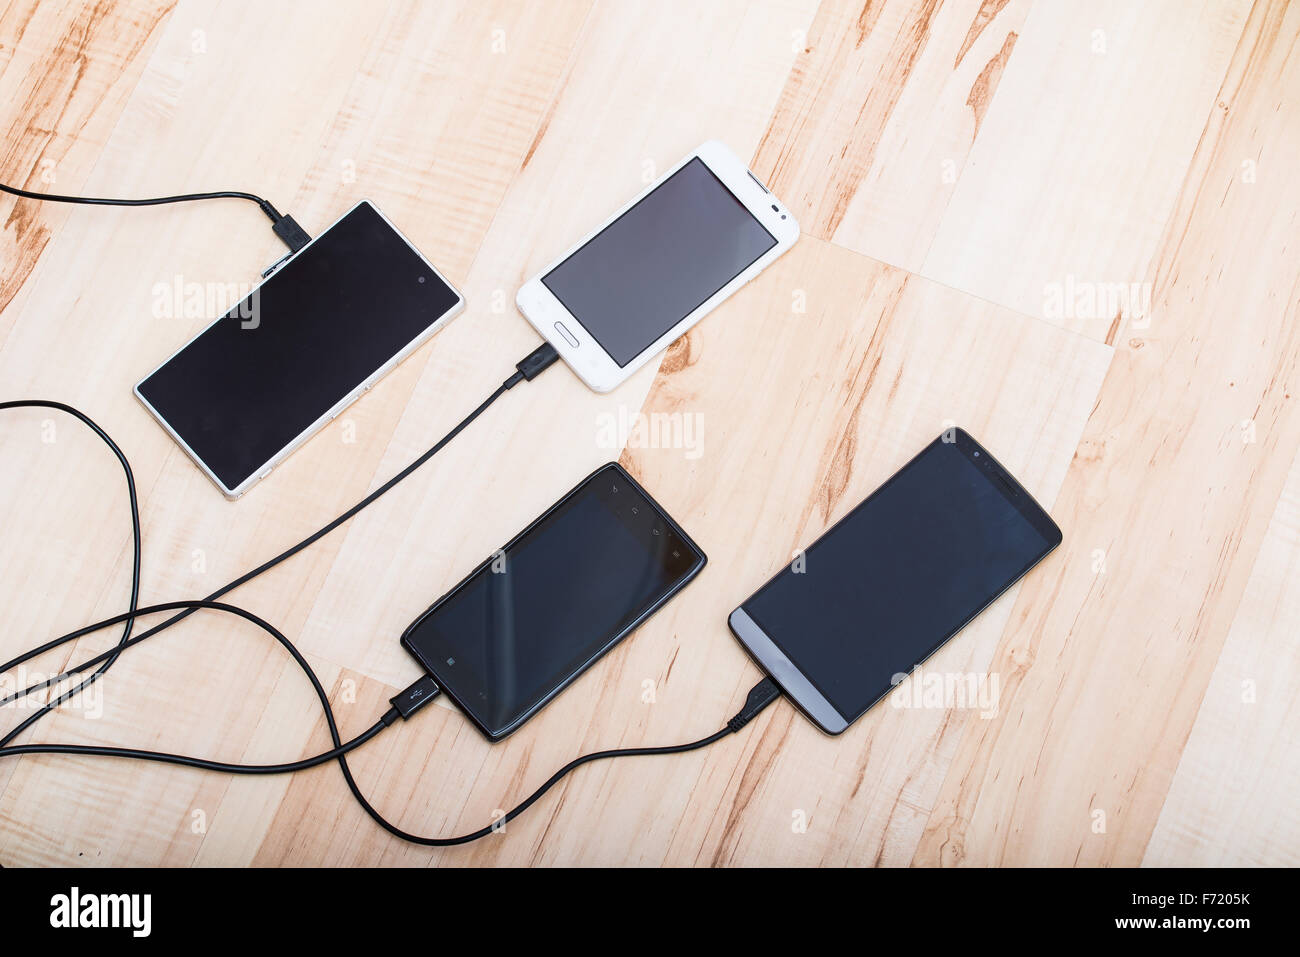 four smartphones connected to chargers - Stock Image